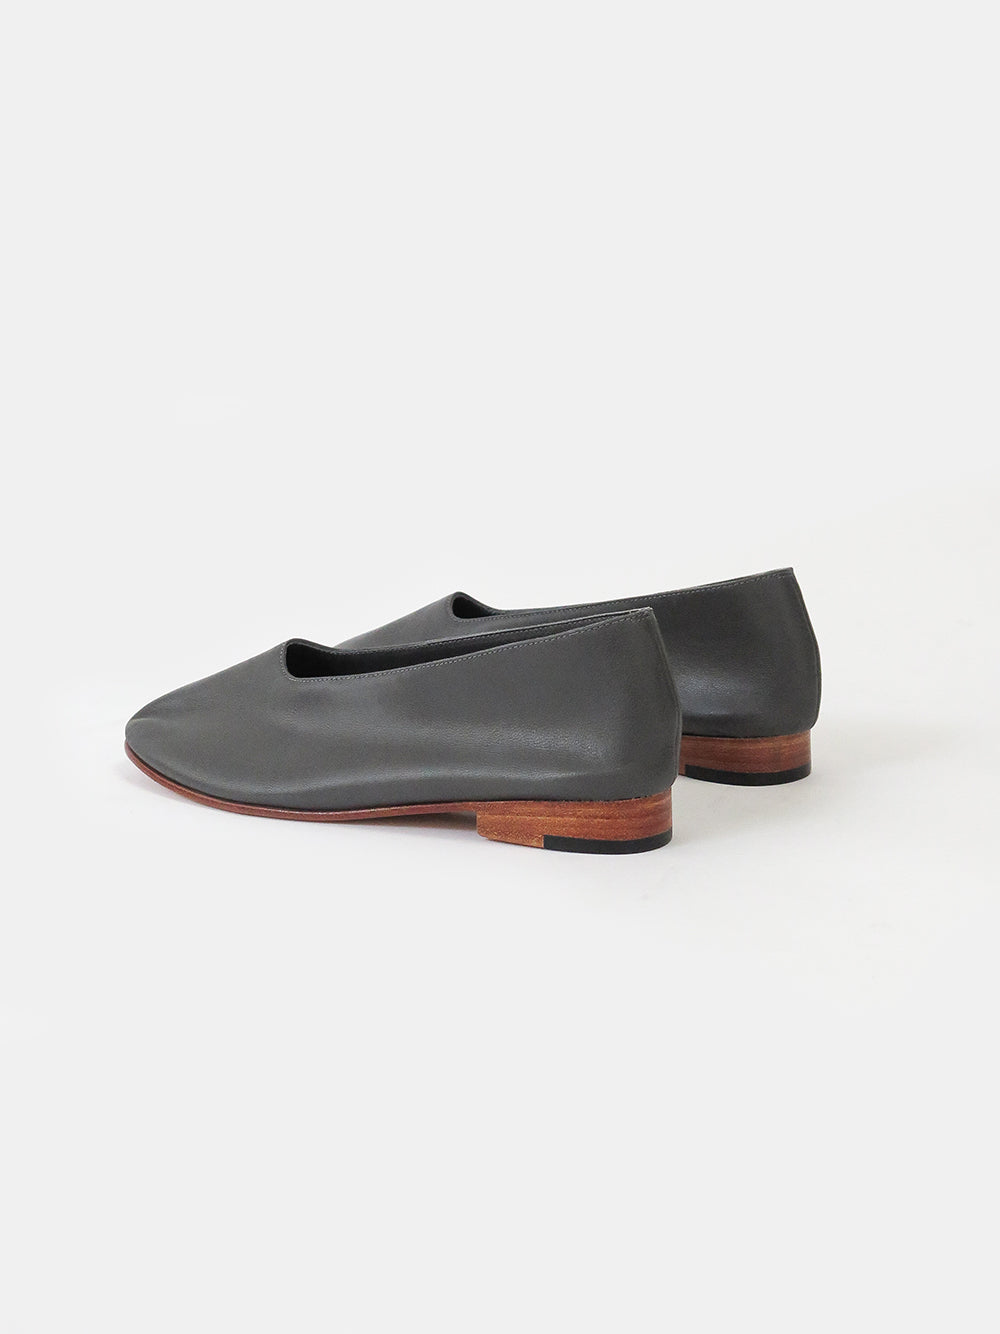 martiniano glove shoe in dark grey